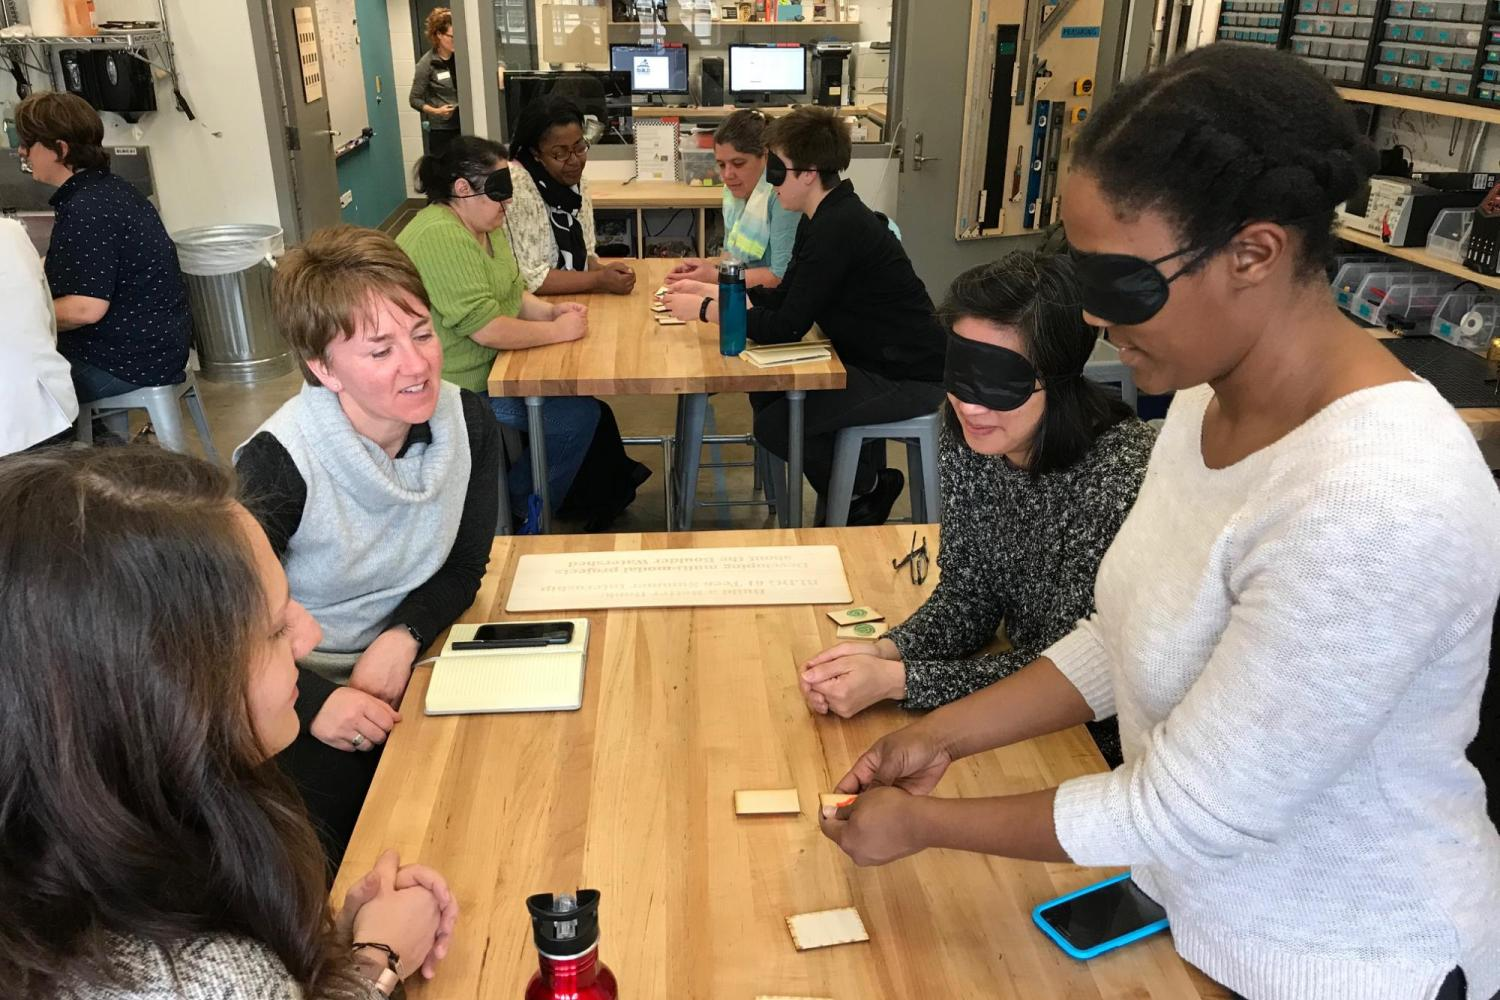 Librarians play tactile memory game during workshop.